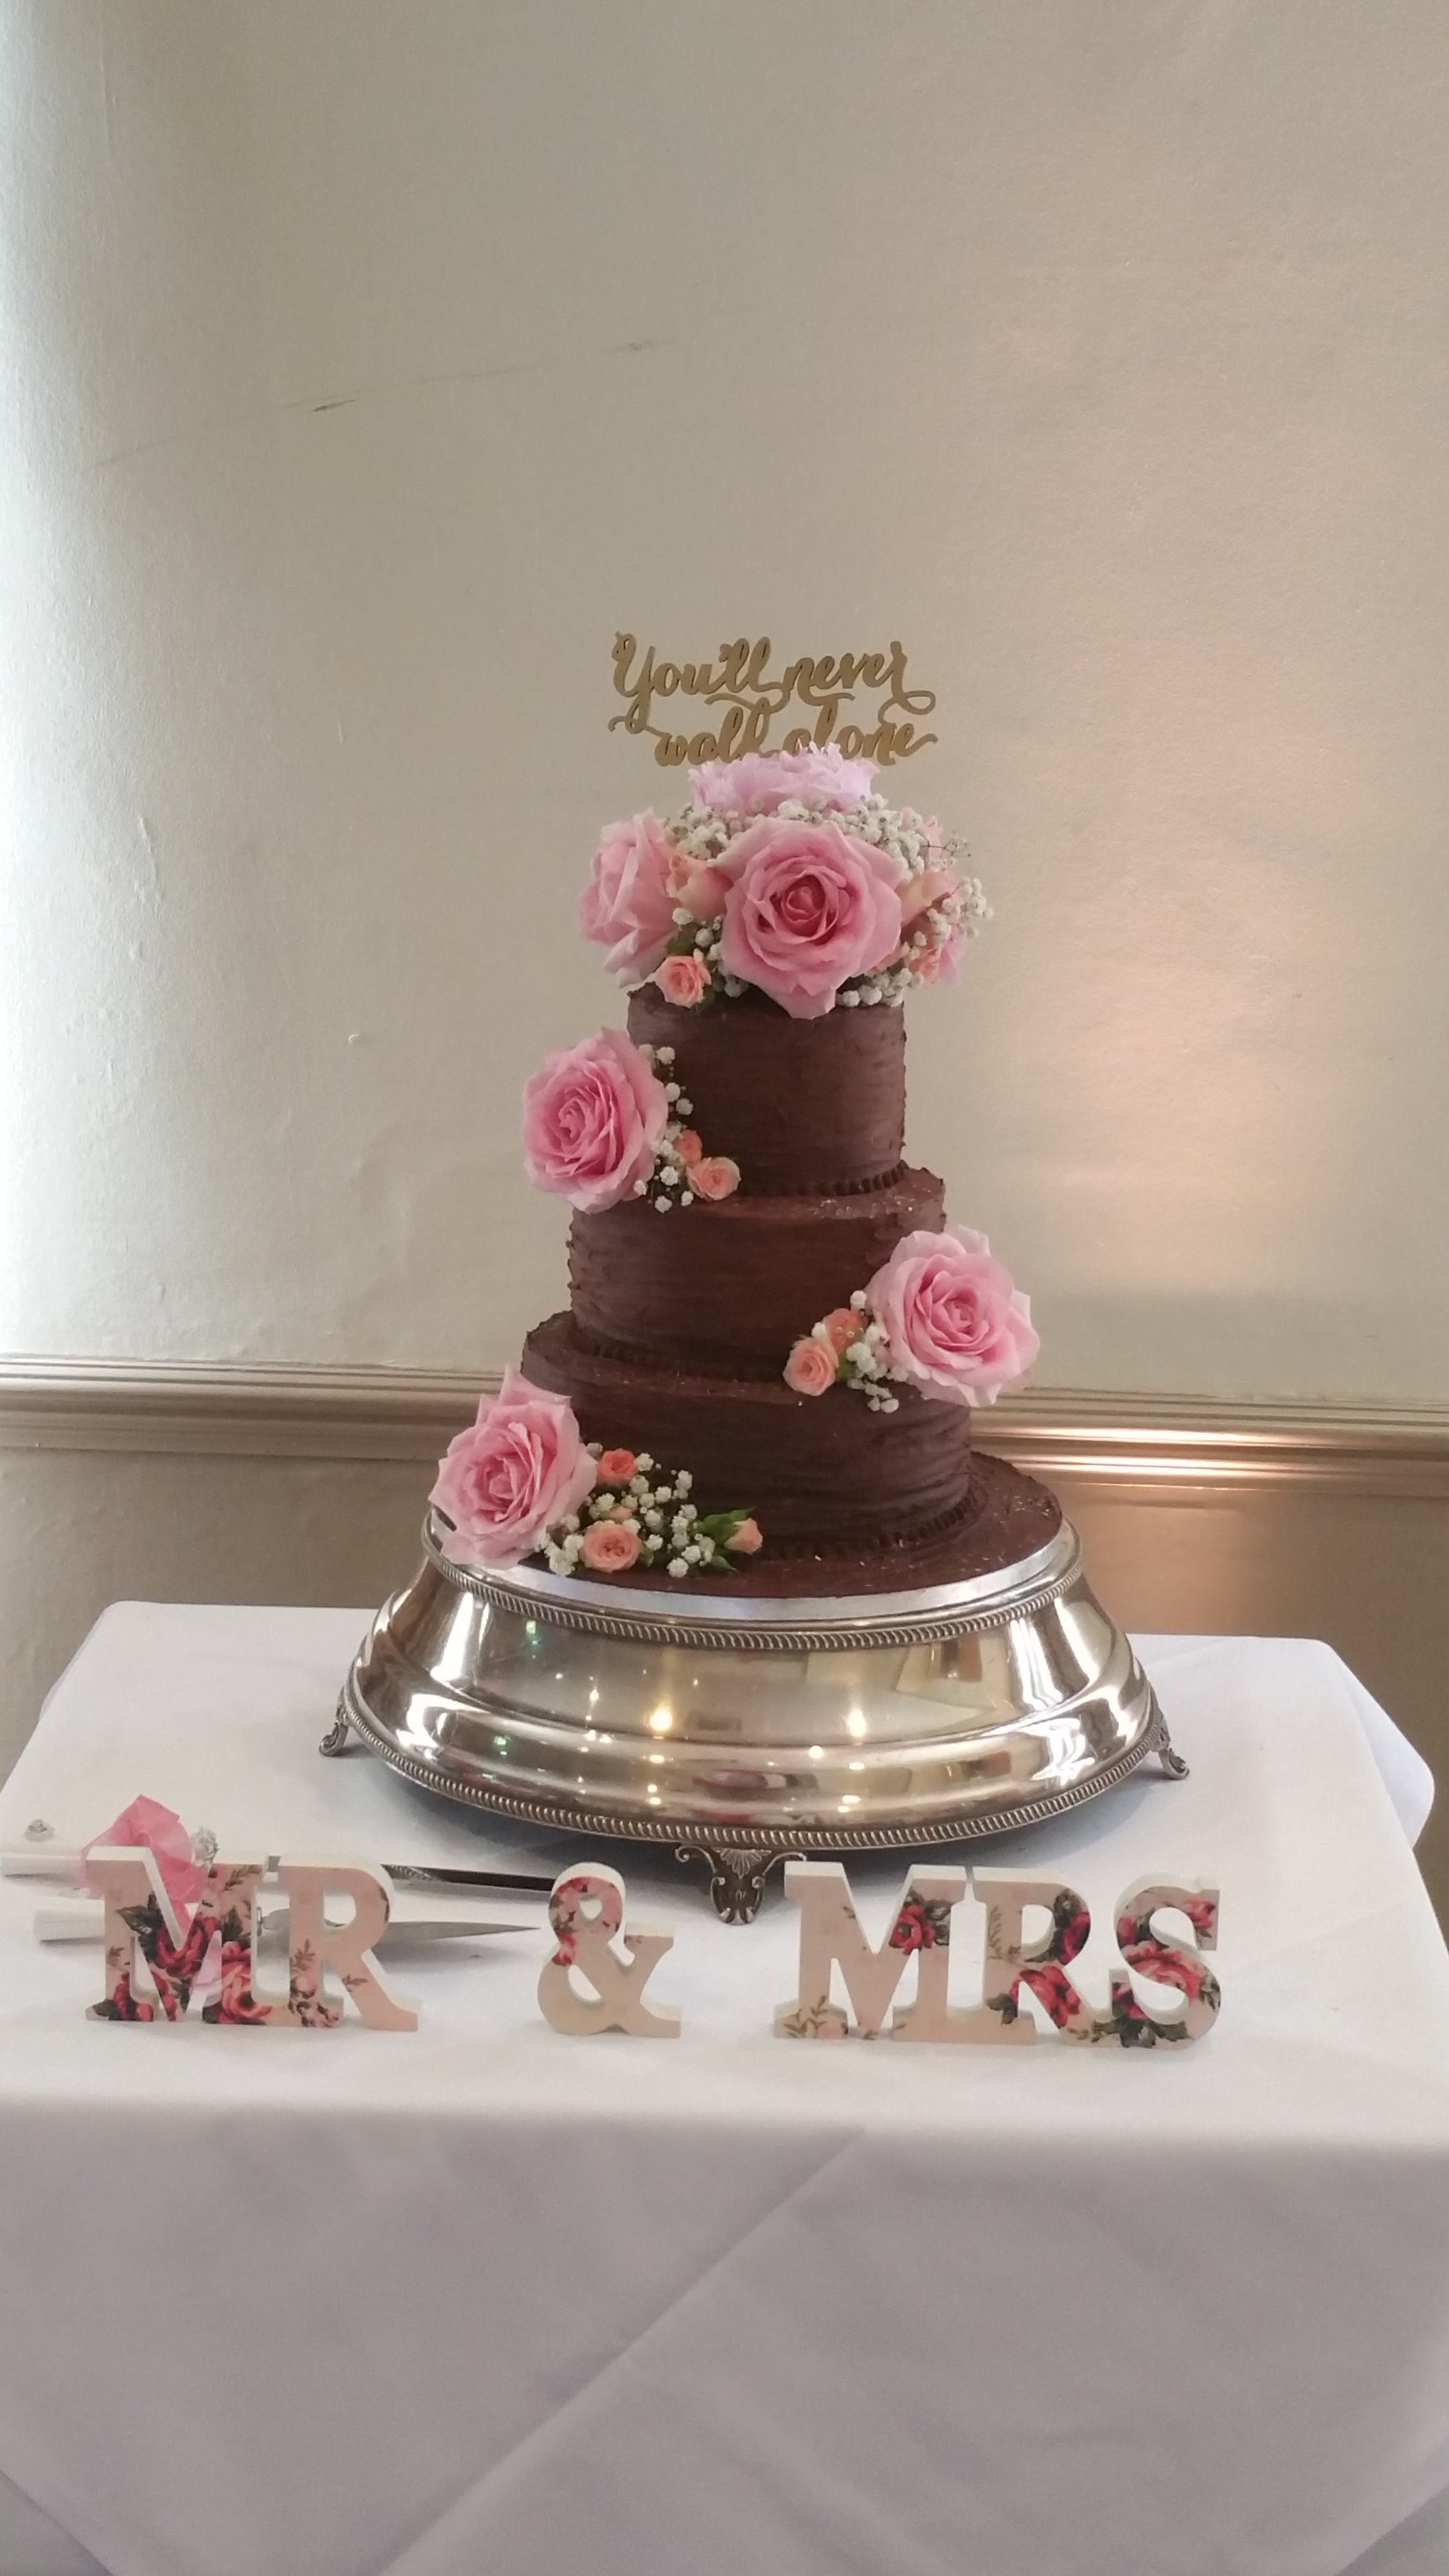 Indulgent chocolate - 3 tiers of delicious chocolate ganache wedding cake.  Finished with a rustic look and arrangements of pretty fresh flowers.